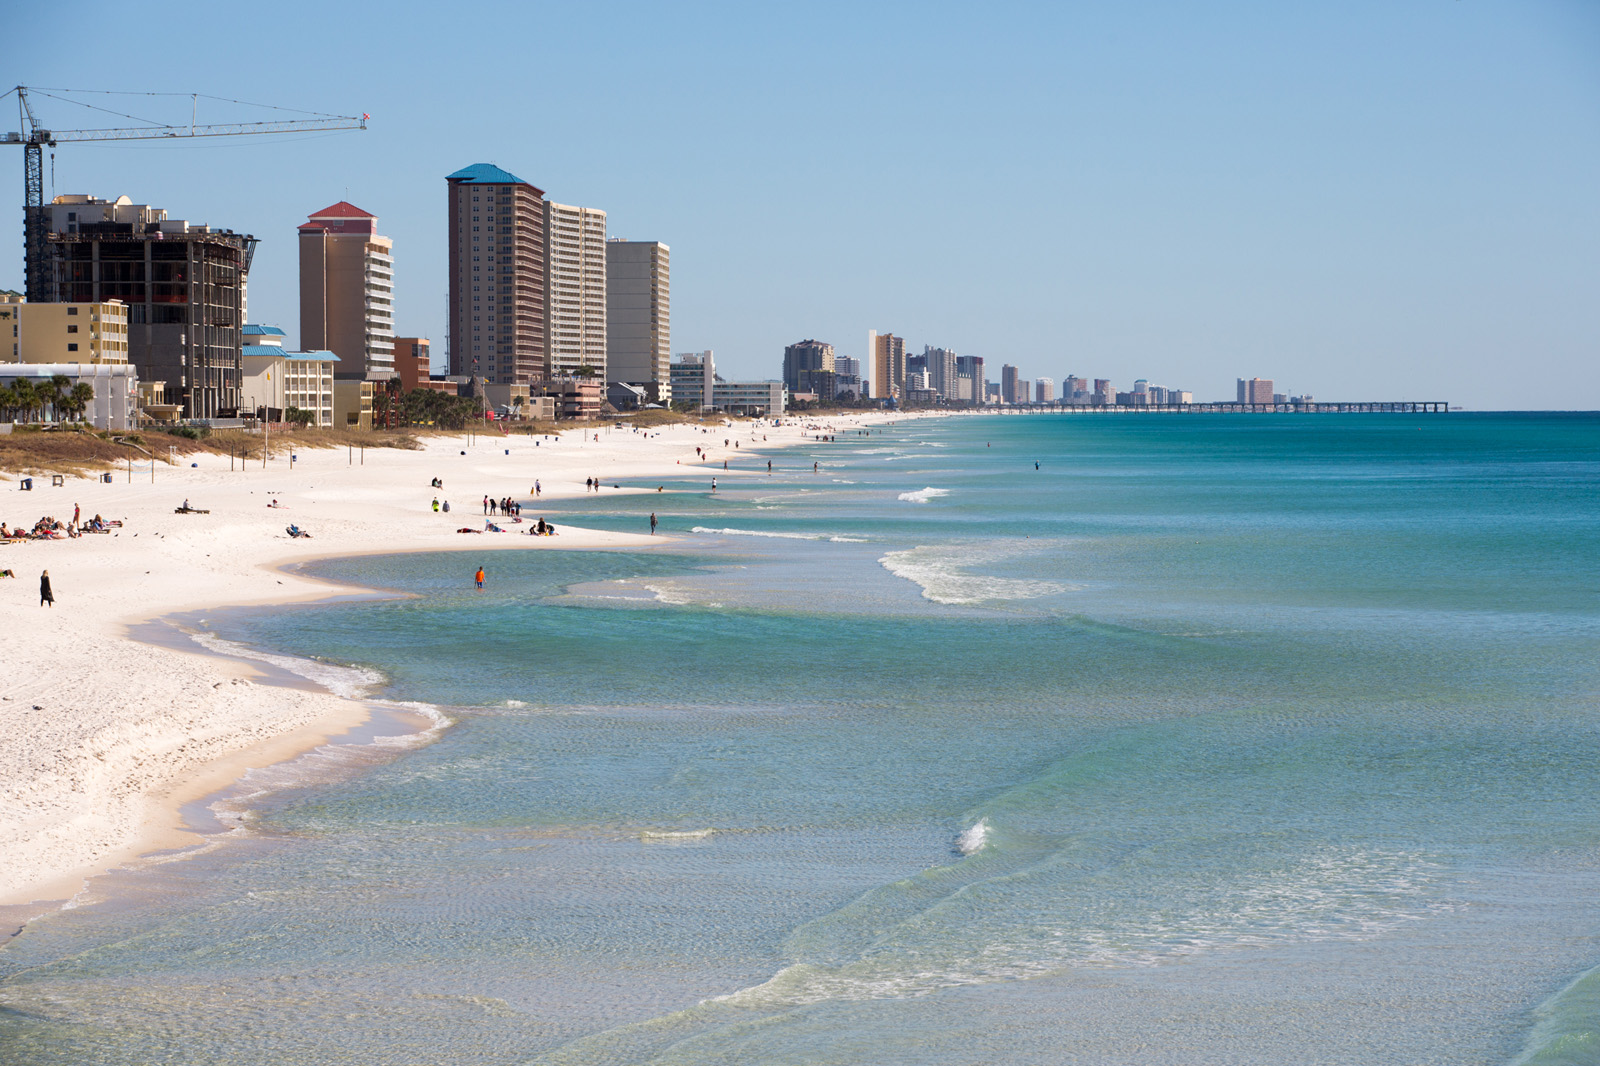 a priceless vacation and experience of the panama city beach Realjoy vacations, destin, florida 105,210 likes 1,086 talking about this vacation rentals in destin, okaloosa island, sandestin, 30a, panama city.